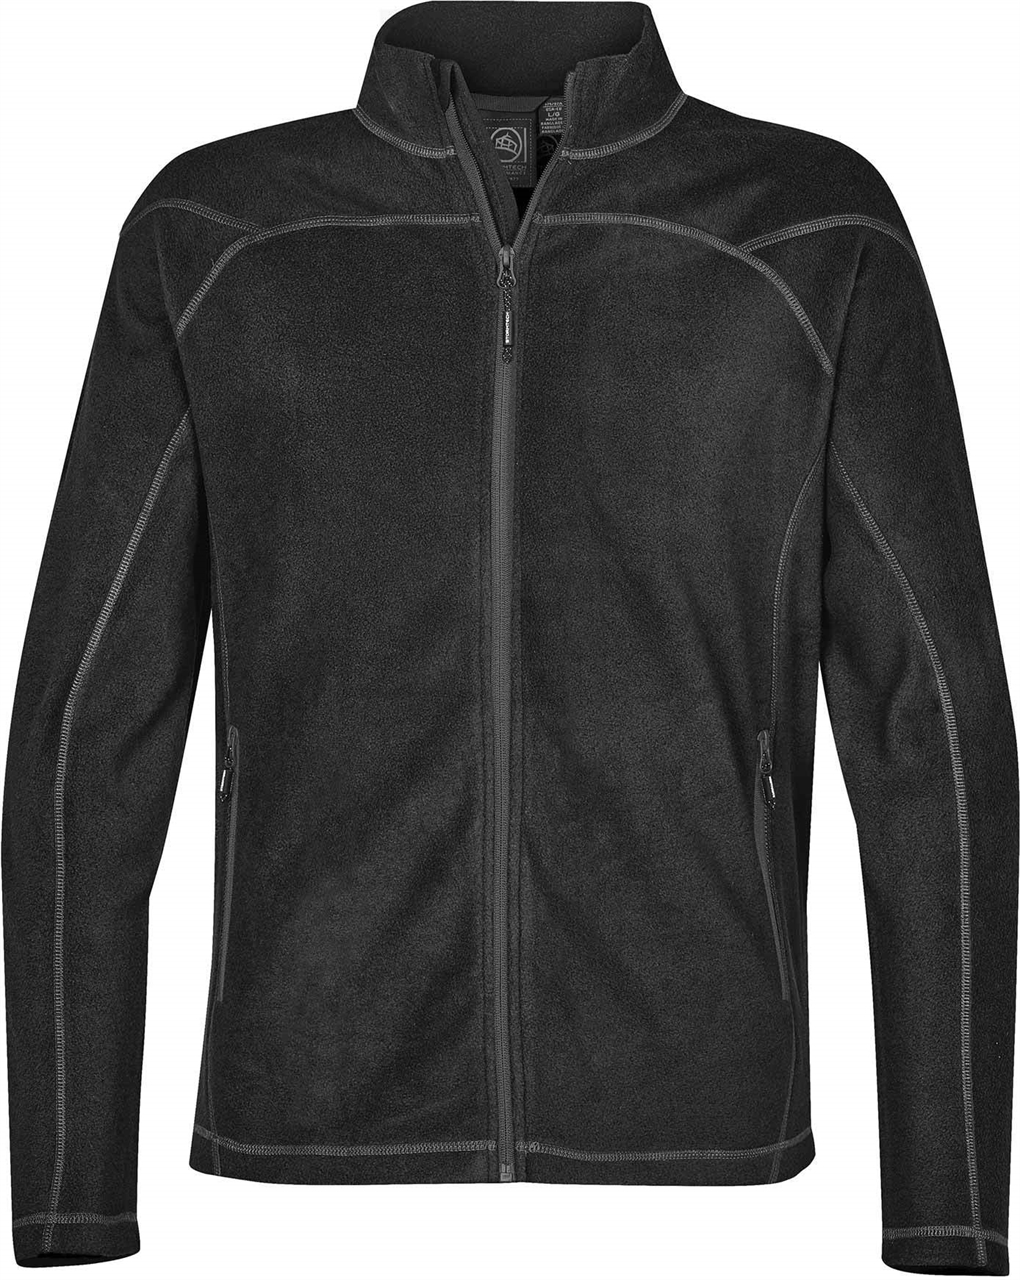 Picture of Stormtech Men's Reactor Fleece Shell